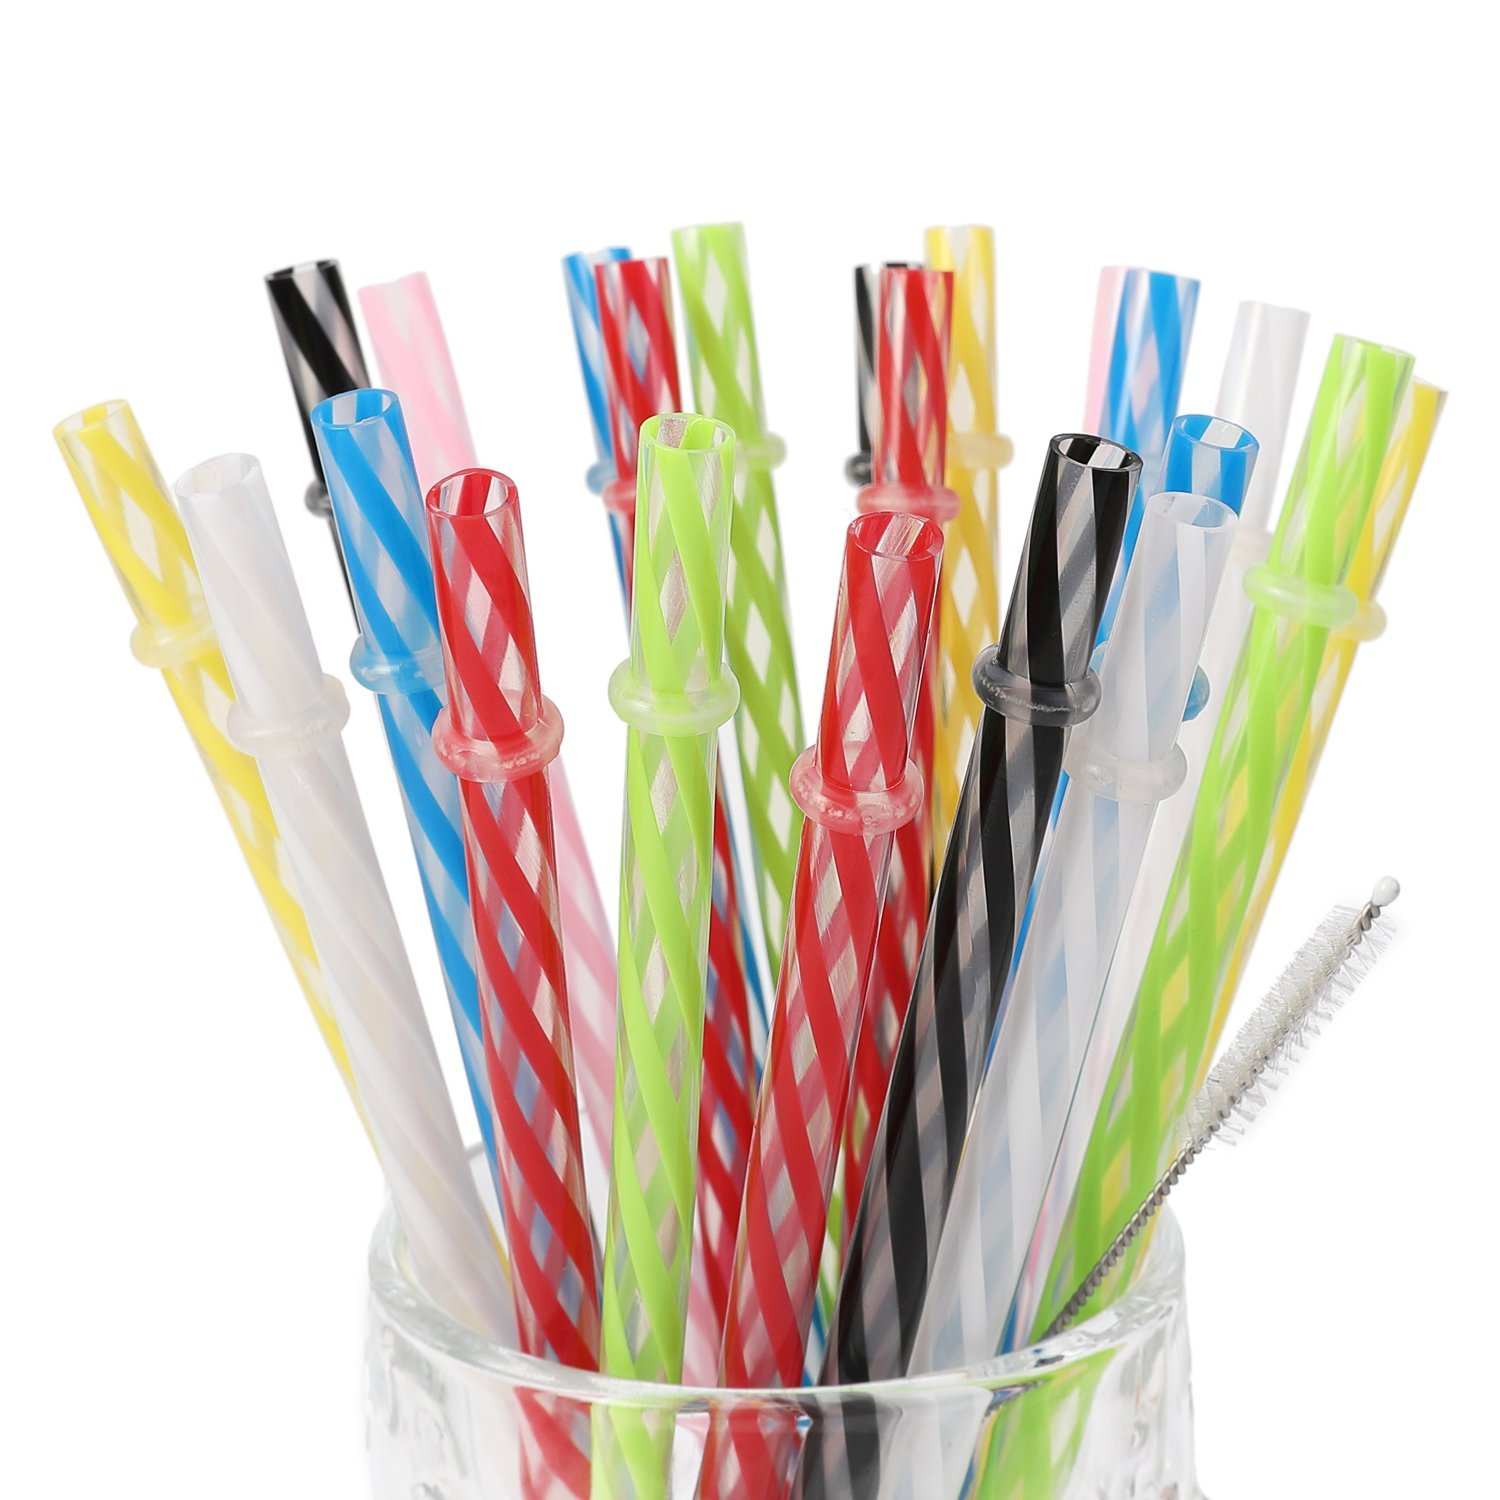 25 Pieces Reusable Plastic Straws. BPA-Free, 9 Inch Long Drinking ...